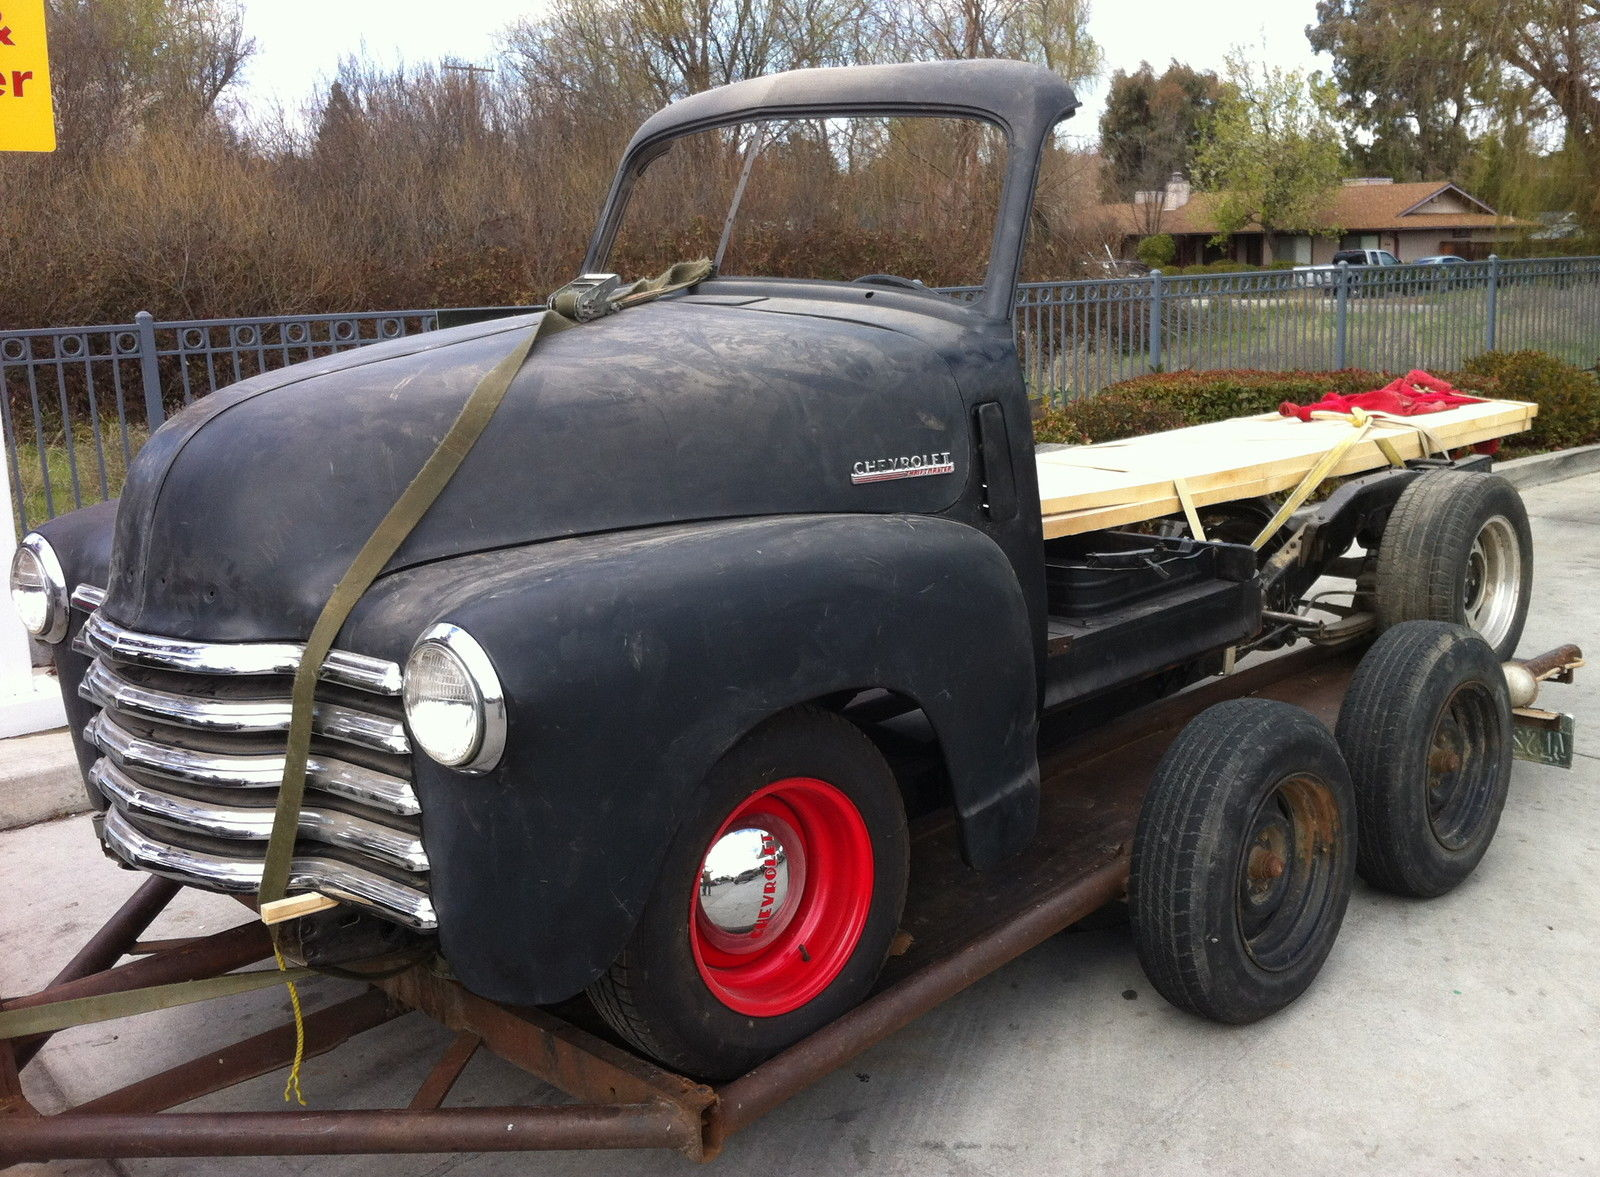 1951 Chevrolet Truck Woody Project On S10 Frame 1947 1948 1949 1950 1957 Chevy Vin Tag Location 1952 Woodie For Sale In Buellton California United States